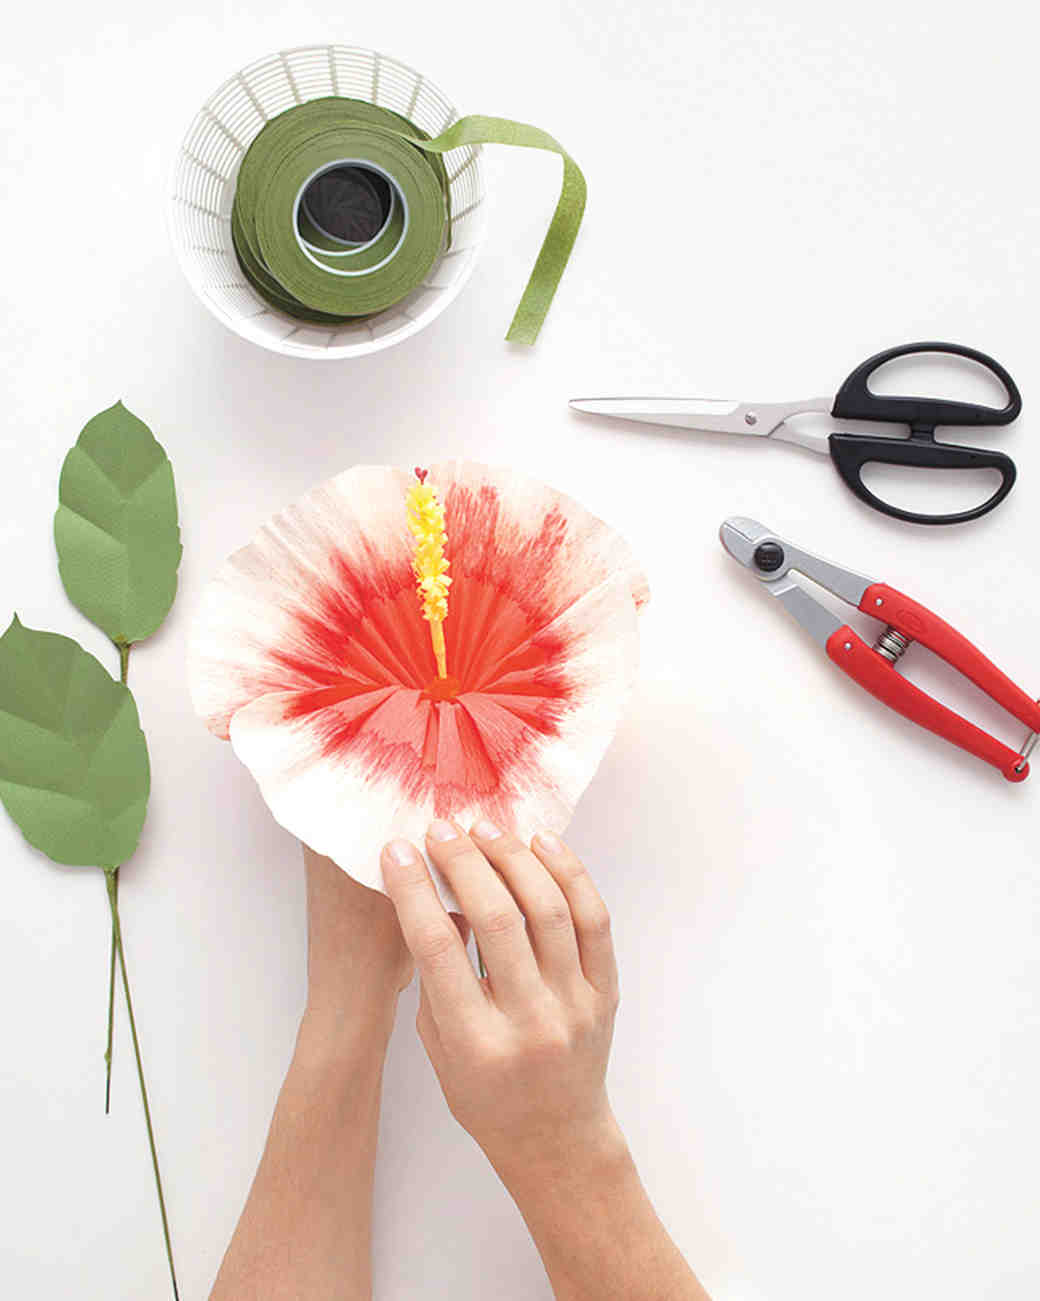 Paper hibiscus flower template vatozozdevelopment paper hibiscus flower template izmirmasajfo